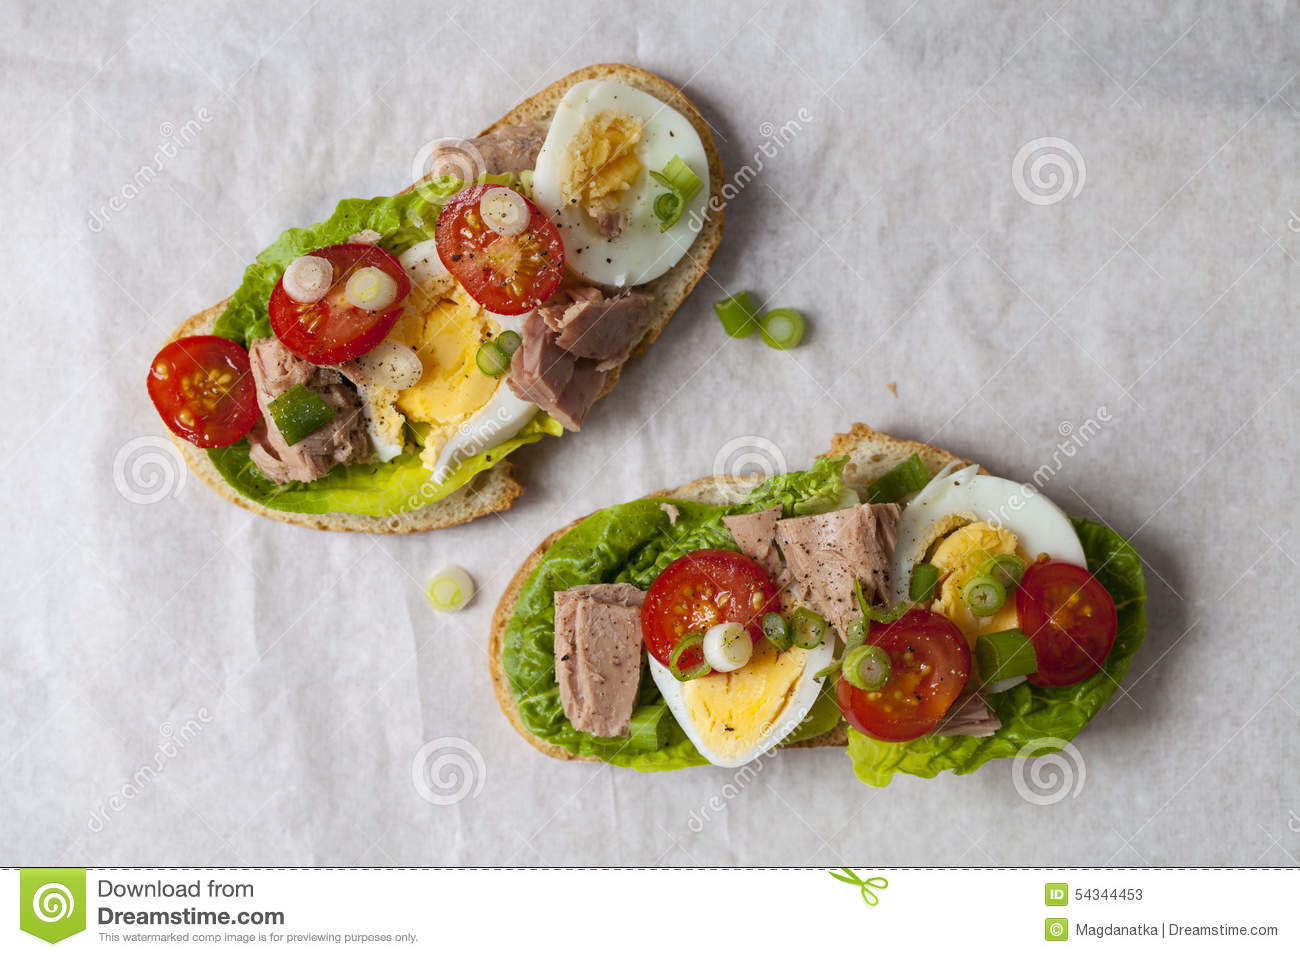 Tuna Nicoise Sandwich Stock Photo - Image: 54344453